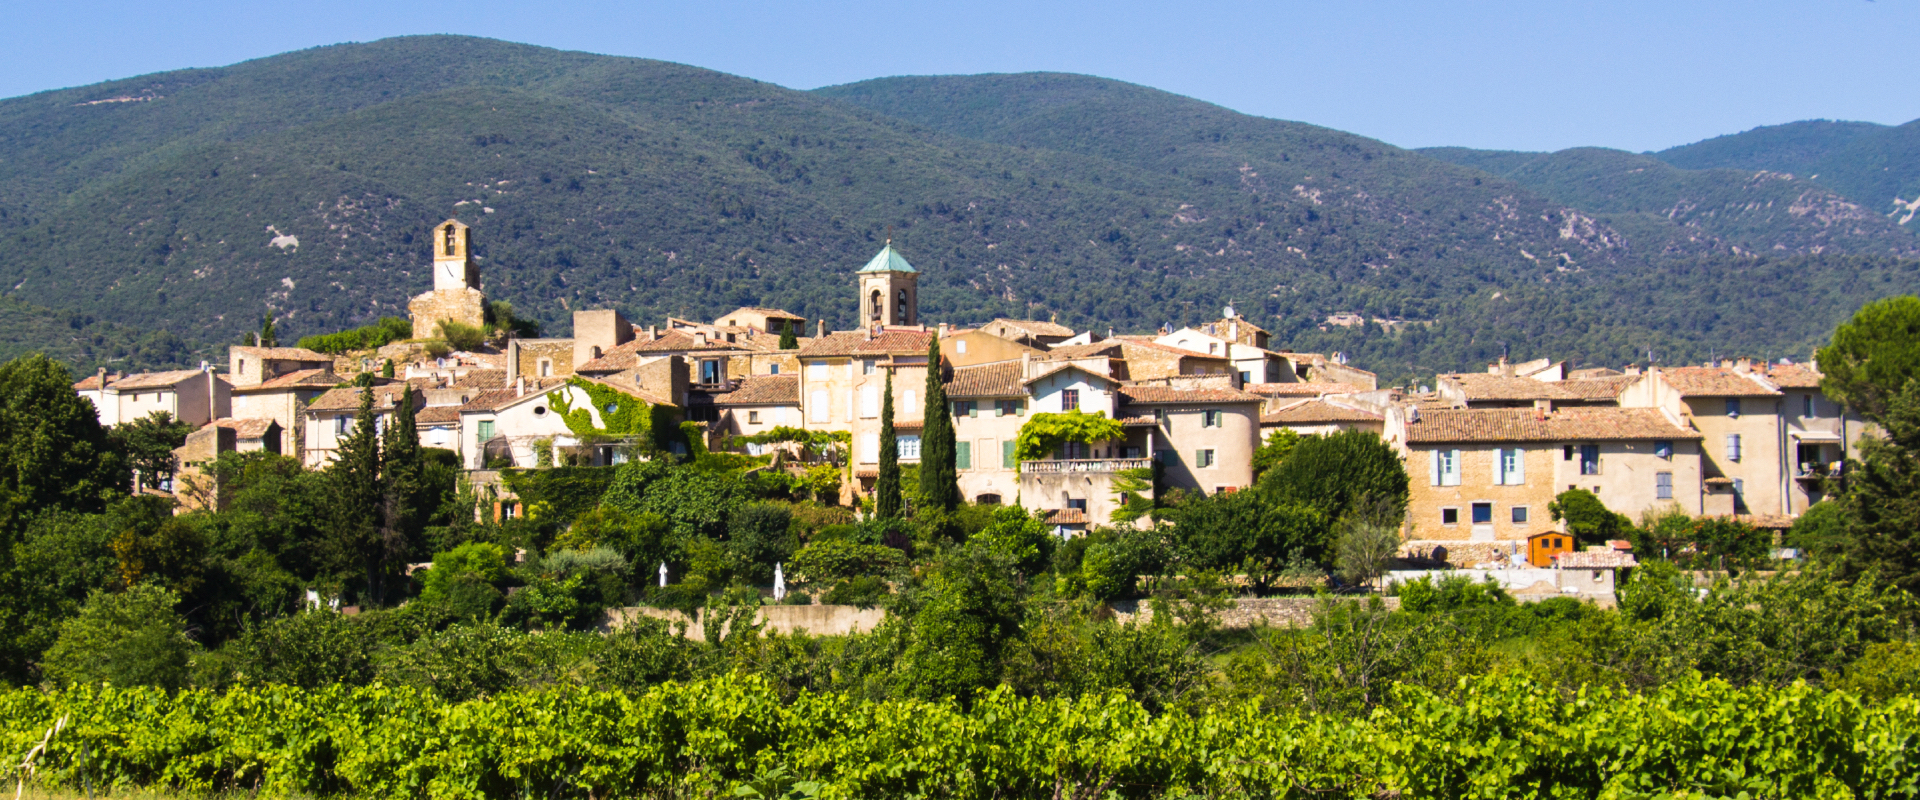 Luberon villages Provence France Rent-Our-Home rentourhomeinprovence Lourmarin